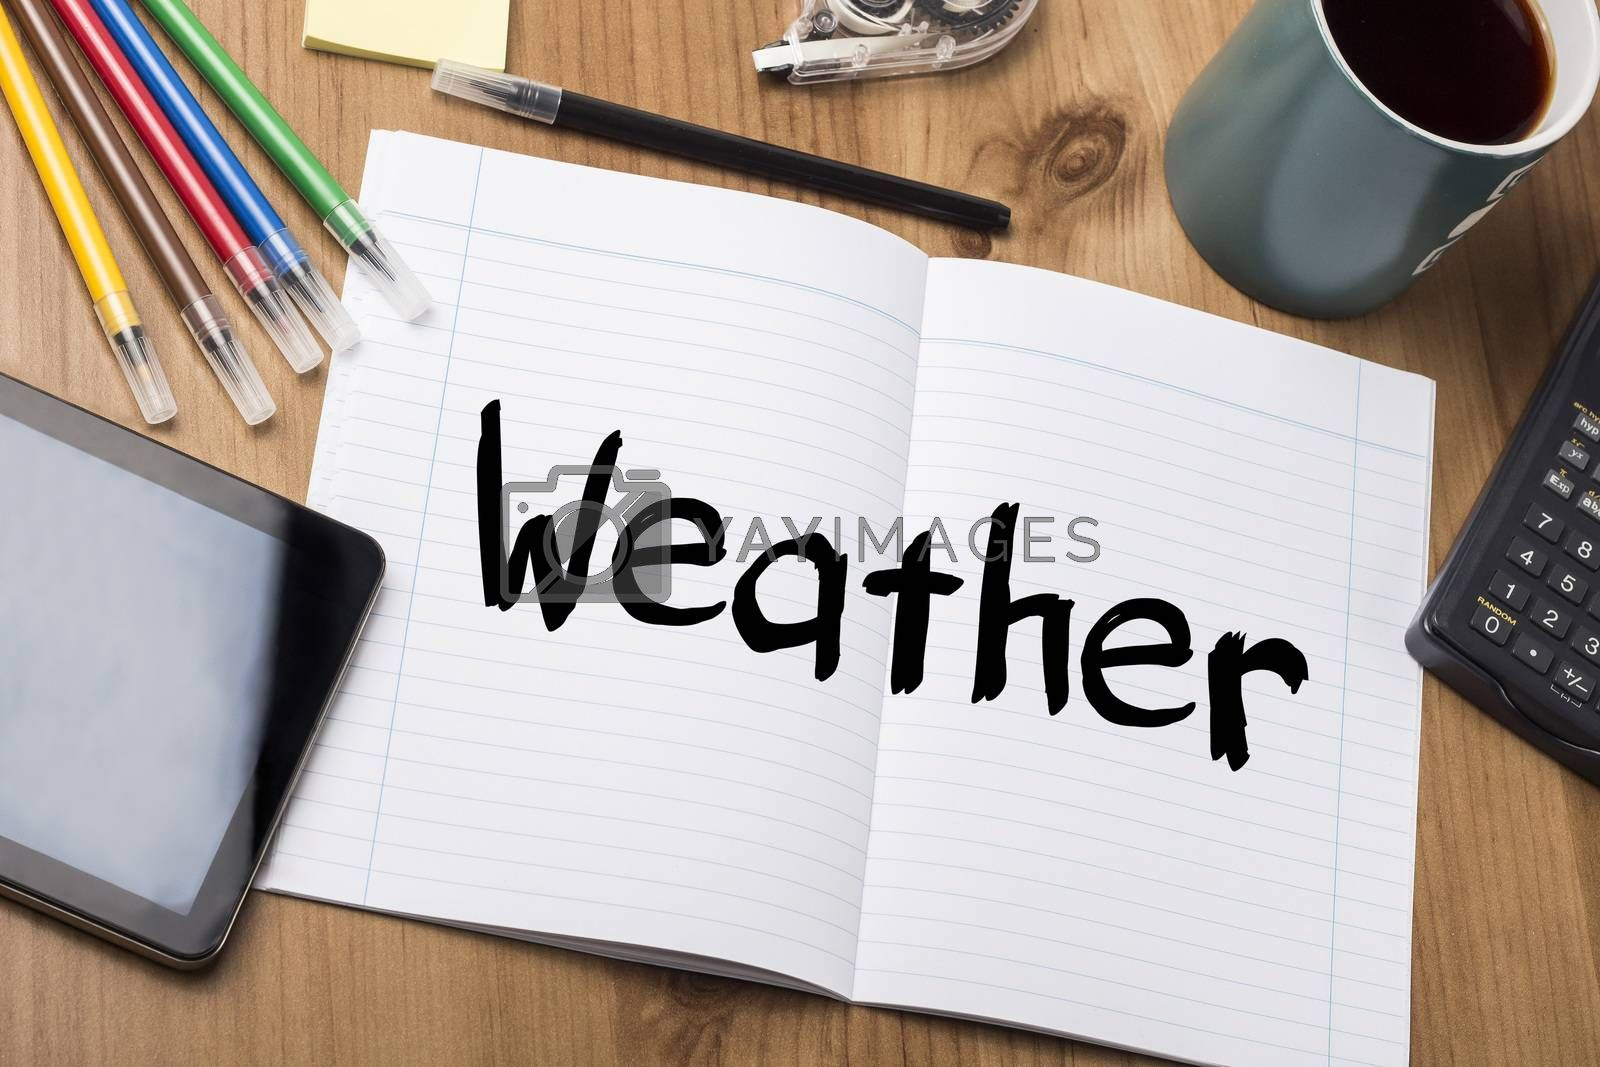 Weather - Note Pad With Text by zsirosistvan